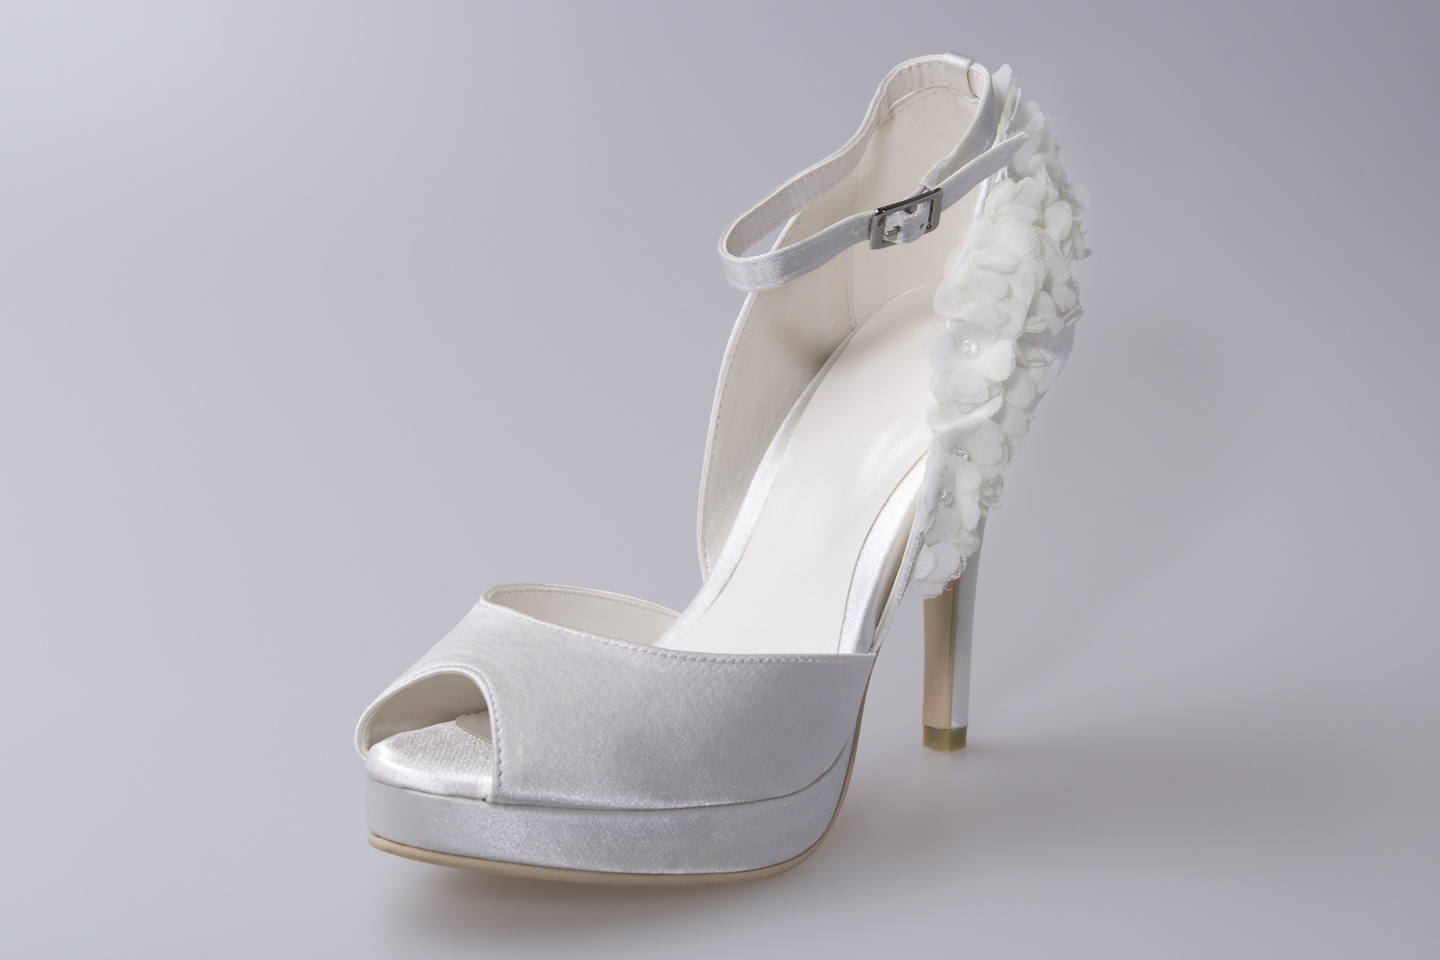 Model 437 - Bellini Wedding Shoes